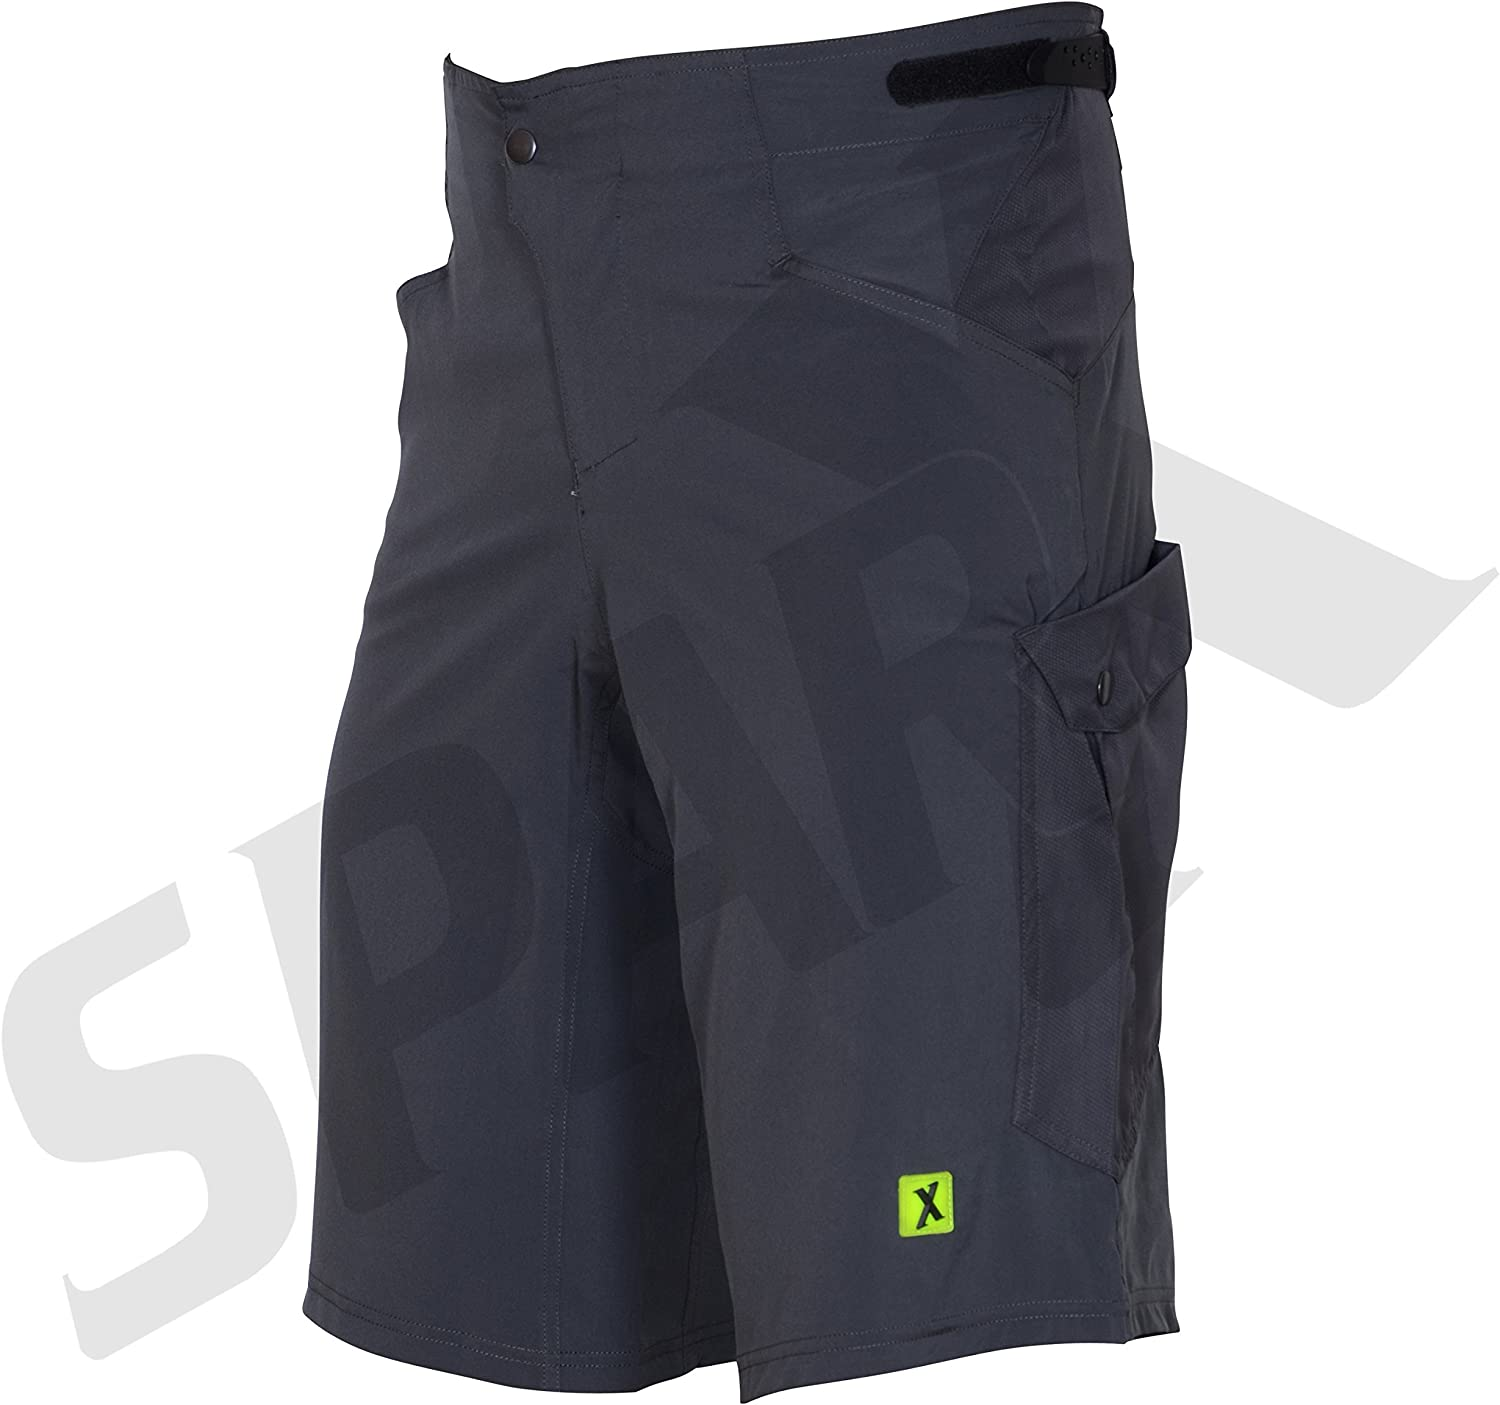 Mens Baggy MTB Mountain Bike Shorts with Removable Cycling Short Liner 3D Padded 2XL 38-40, Grey